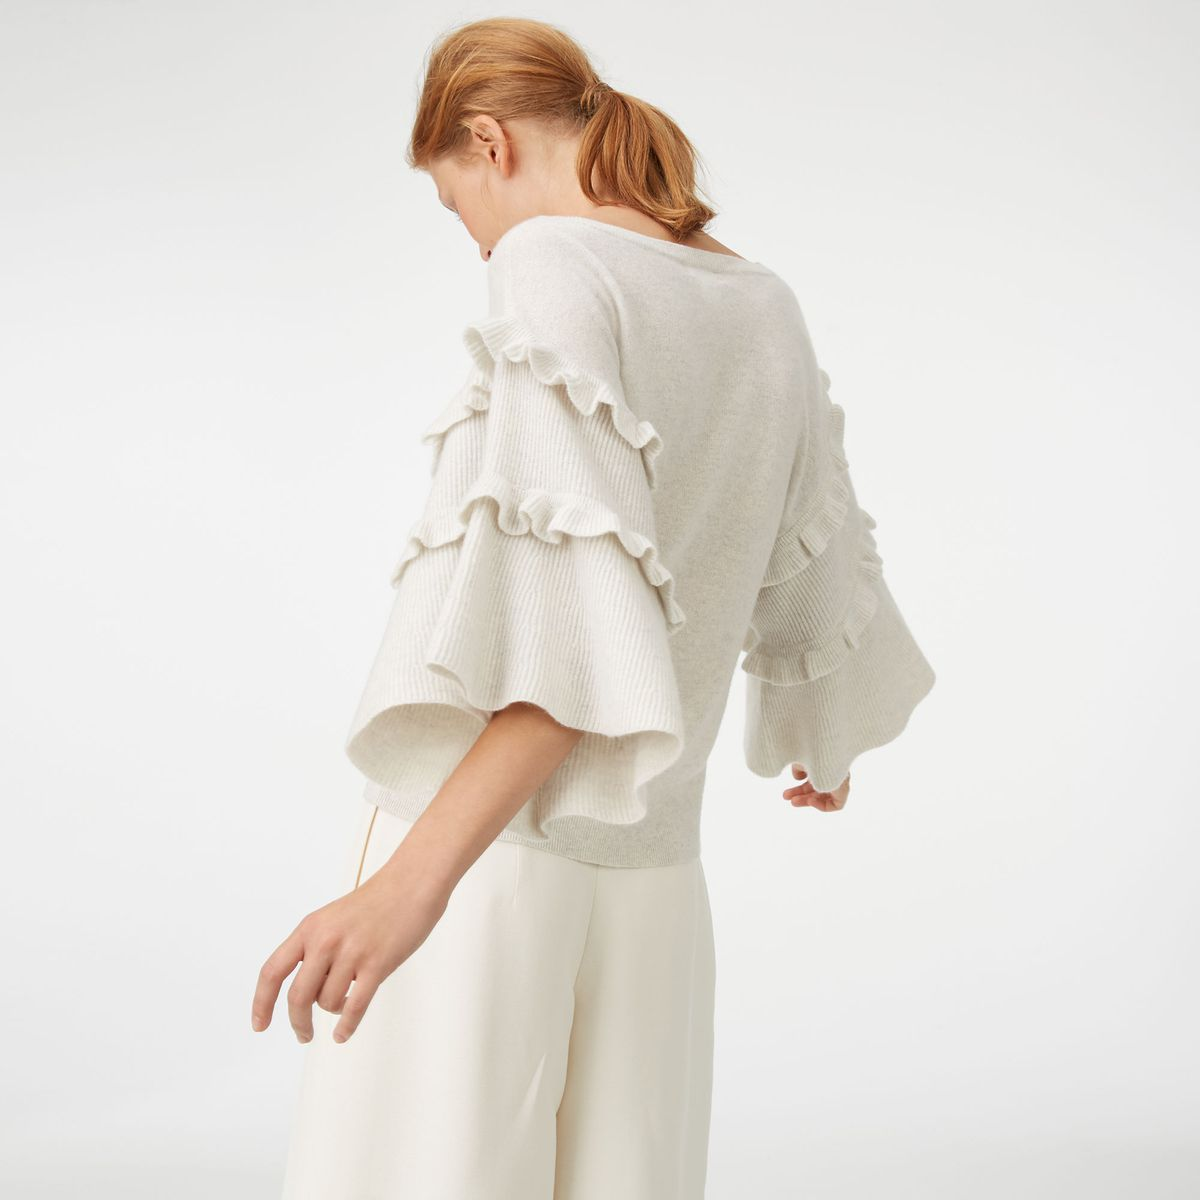 A bell-sleeved sweater with ruffles